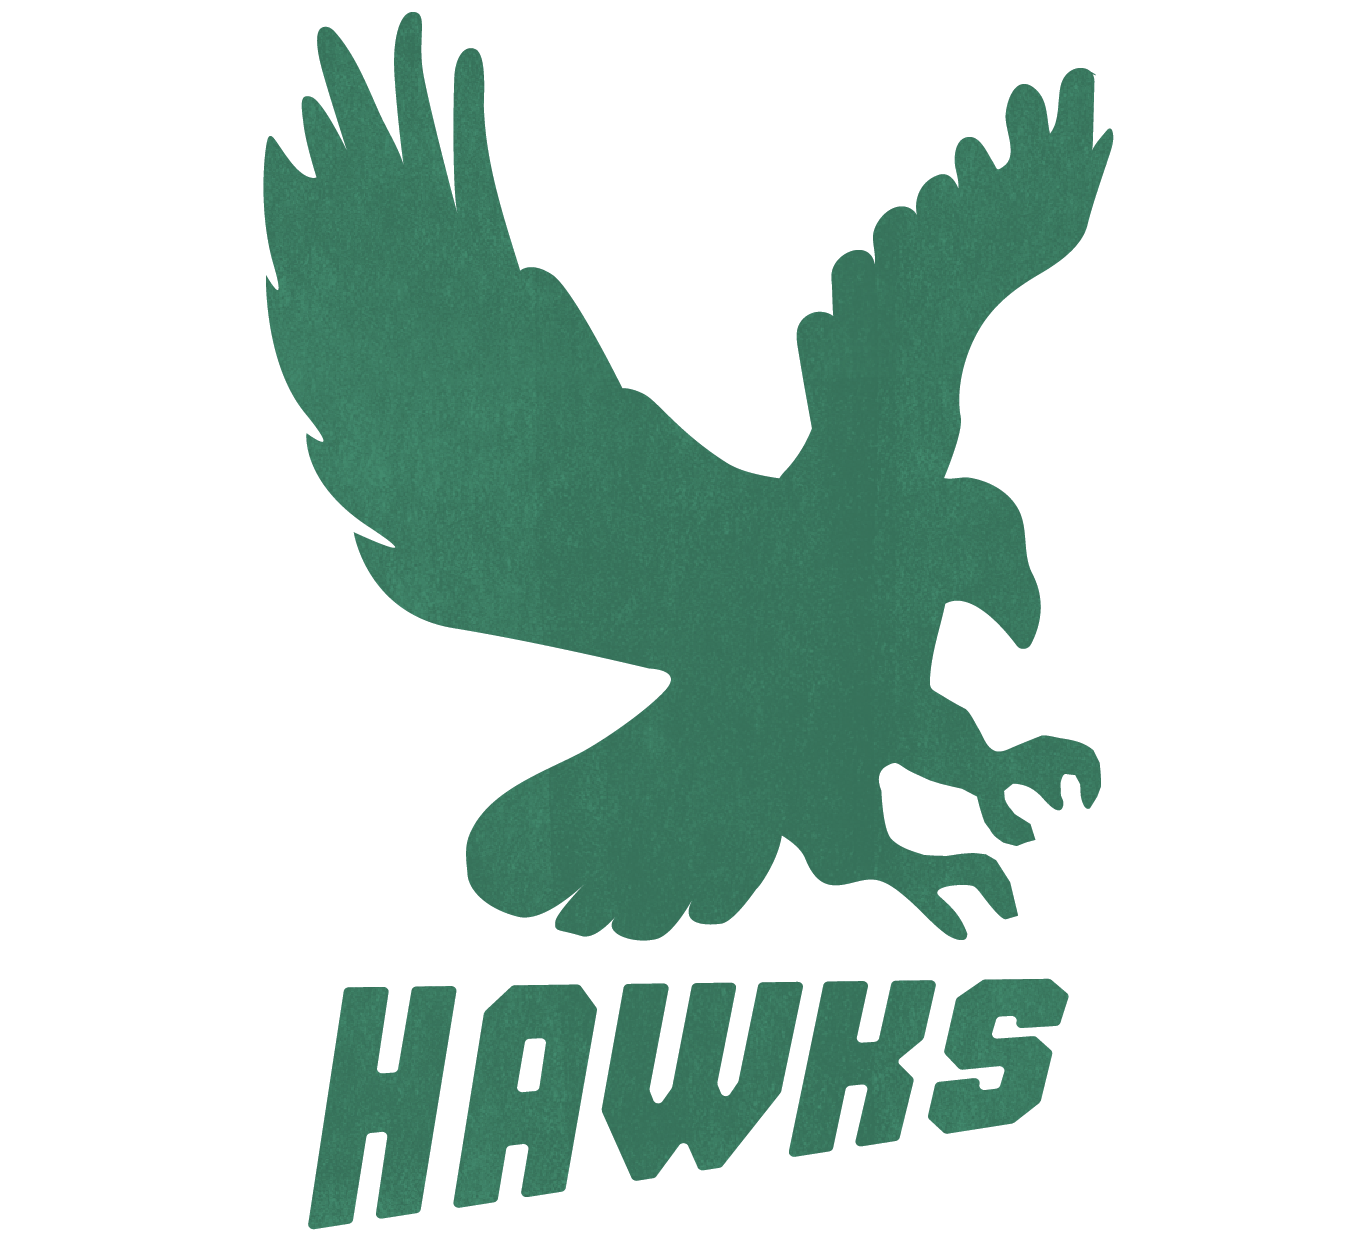 Hawks patrol logo. A summer weekend break in a forest near London and Kent. An outdoor woodland retreat featuring adventure activities, live music, DJs, parties and camping. Half summer adventure activity camp, half music festival, for adults only.